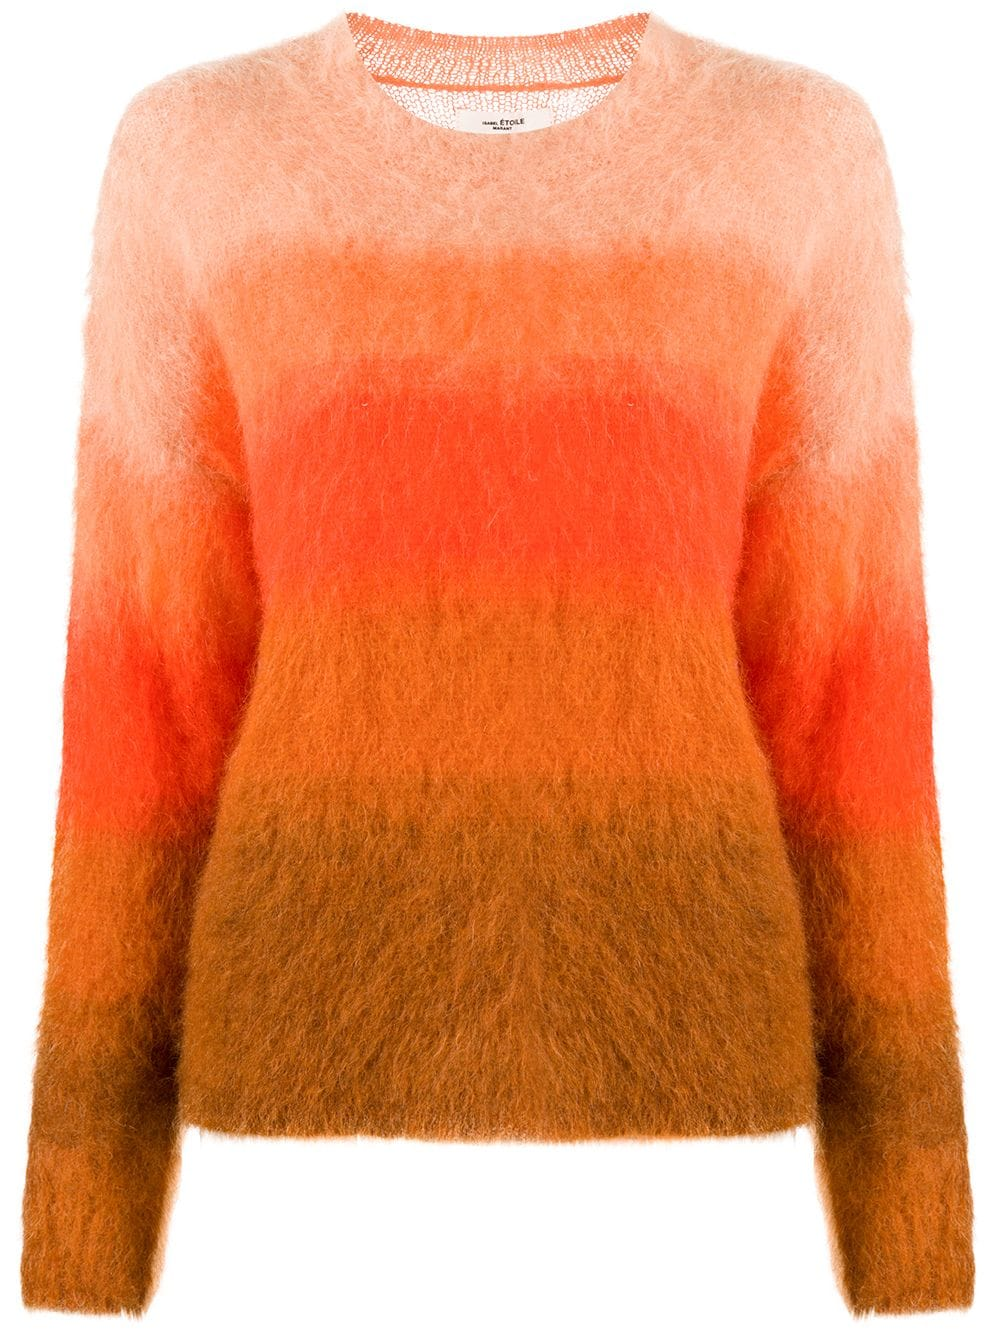 Drussell Wool Sweater